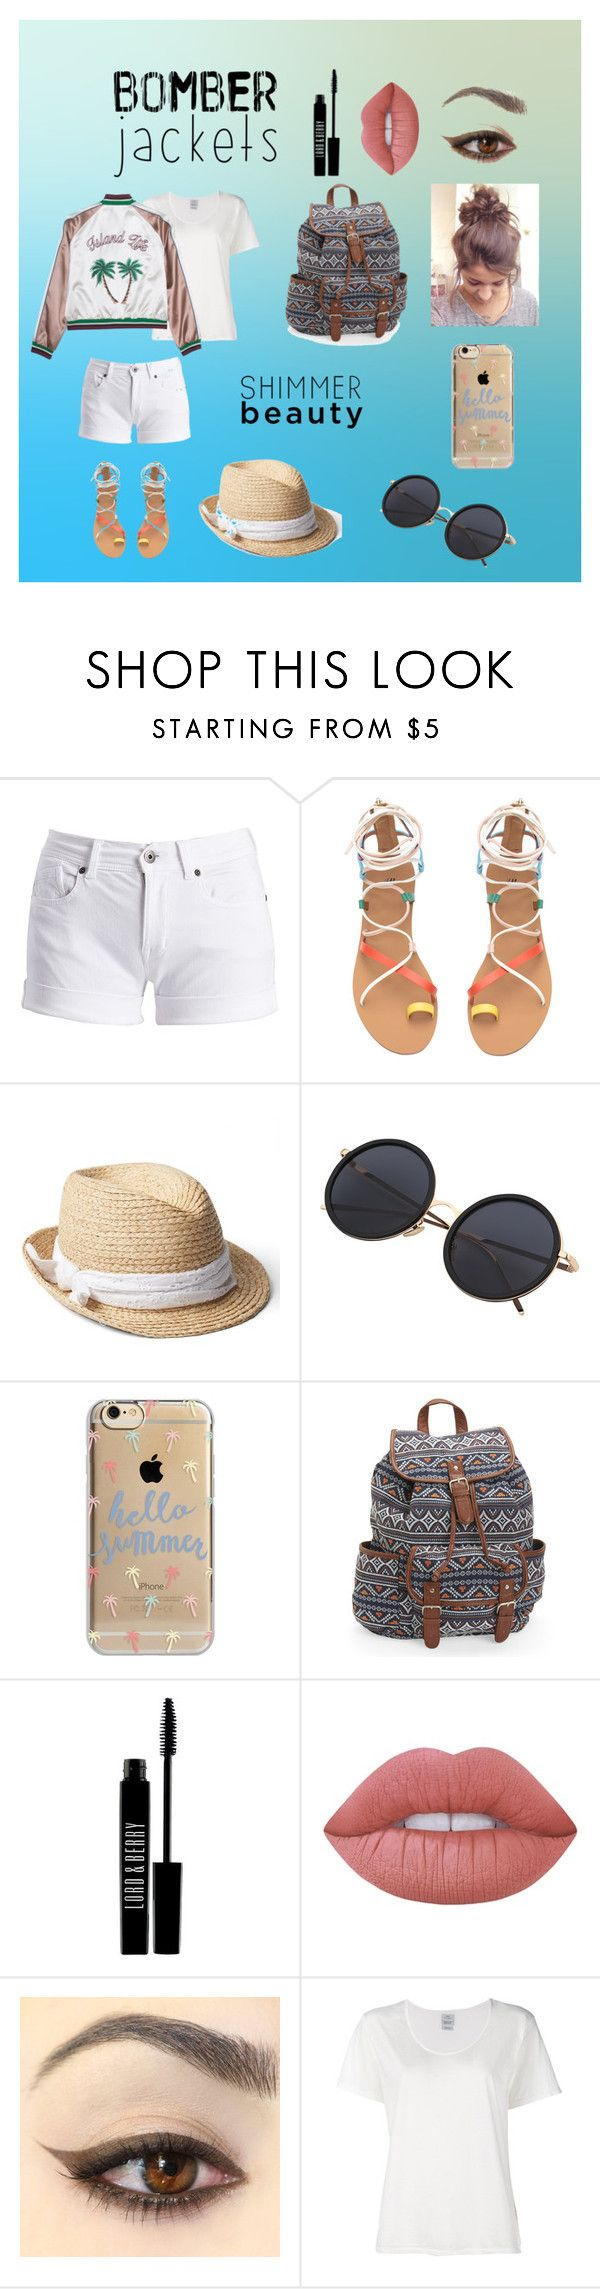 """""""Bomber Jackets Contest ❤️"""" by katiethehorse12 ❤ liked on Polyvore featuring Barbour International, Gap, Agent 18, Aéropostale, Lord & Berry, Lime Crime, Visvim and bomberjackets"""